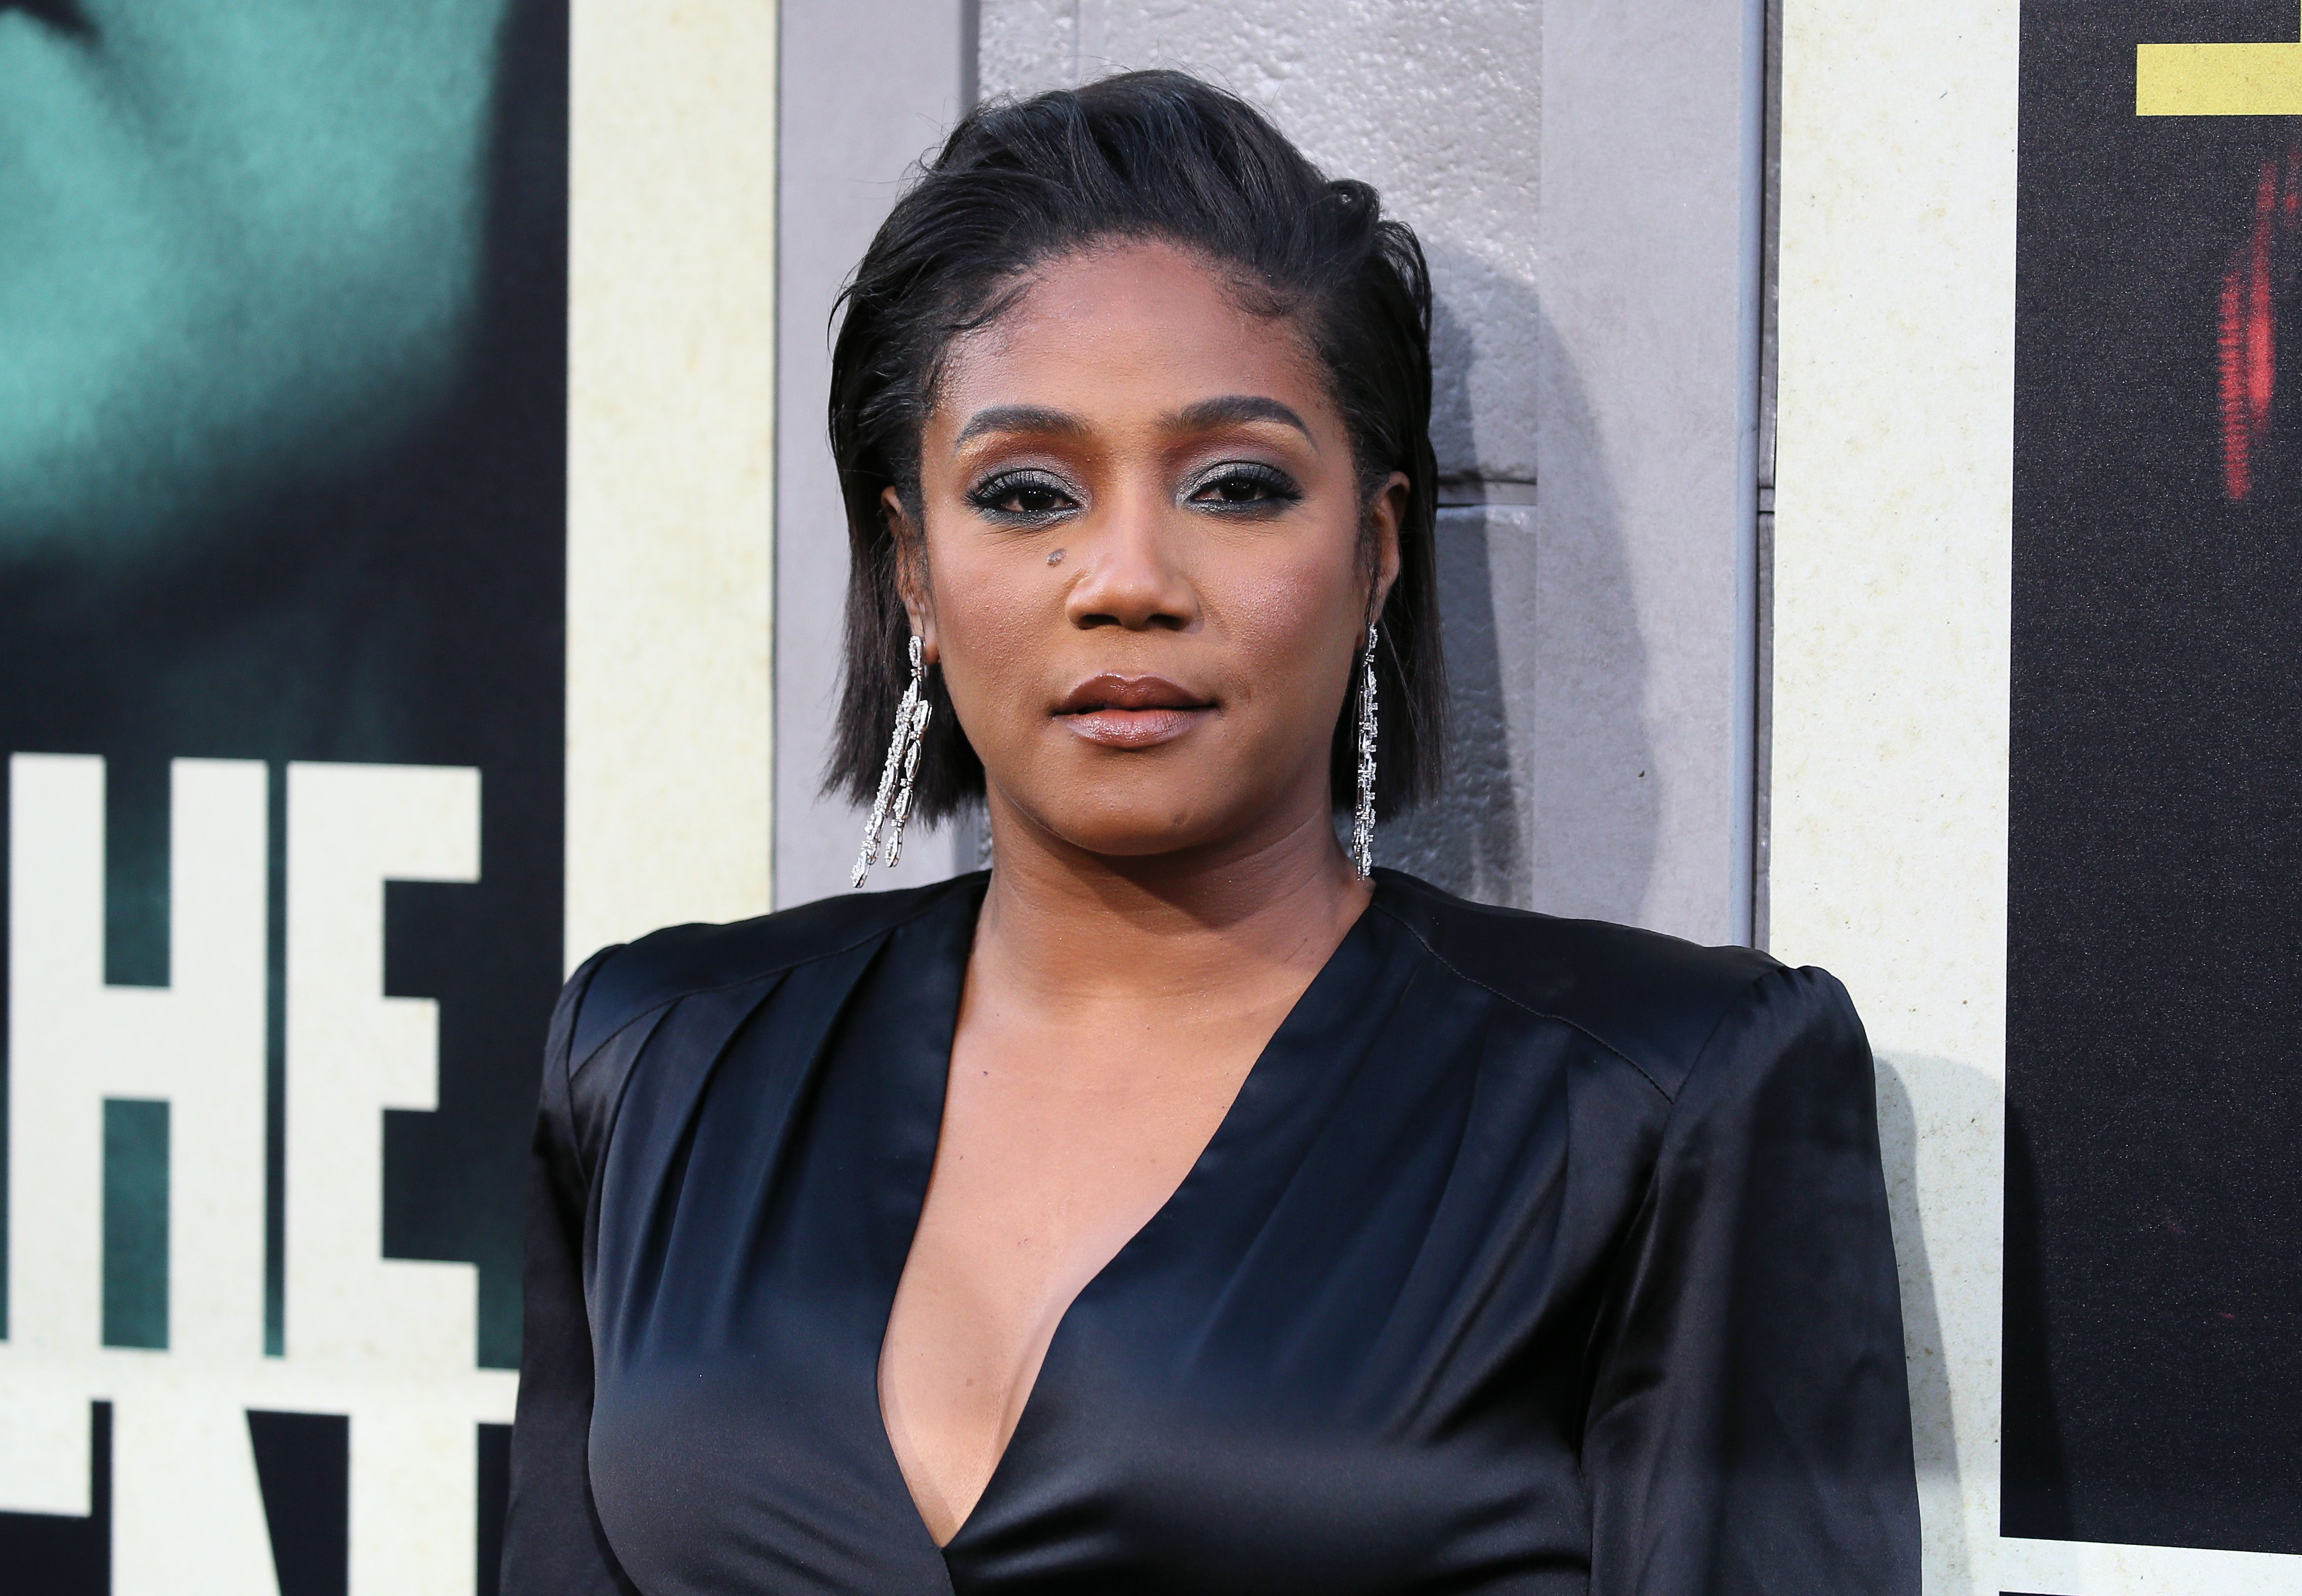 """Tiffany Haddish at the premiere of """"The Kitchen"""" in August 2019 in Hollywood 